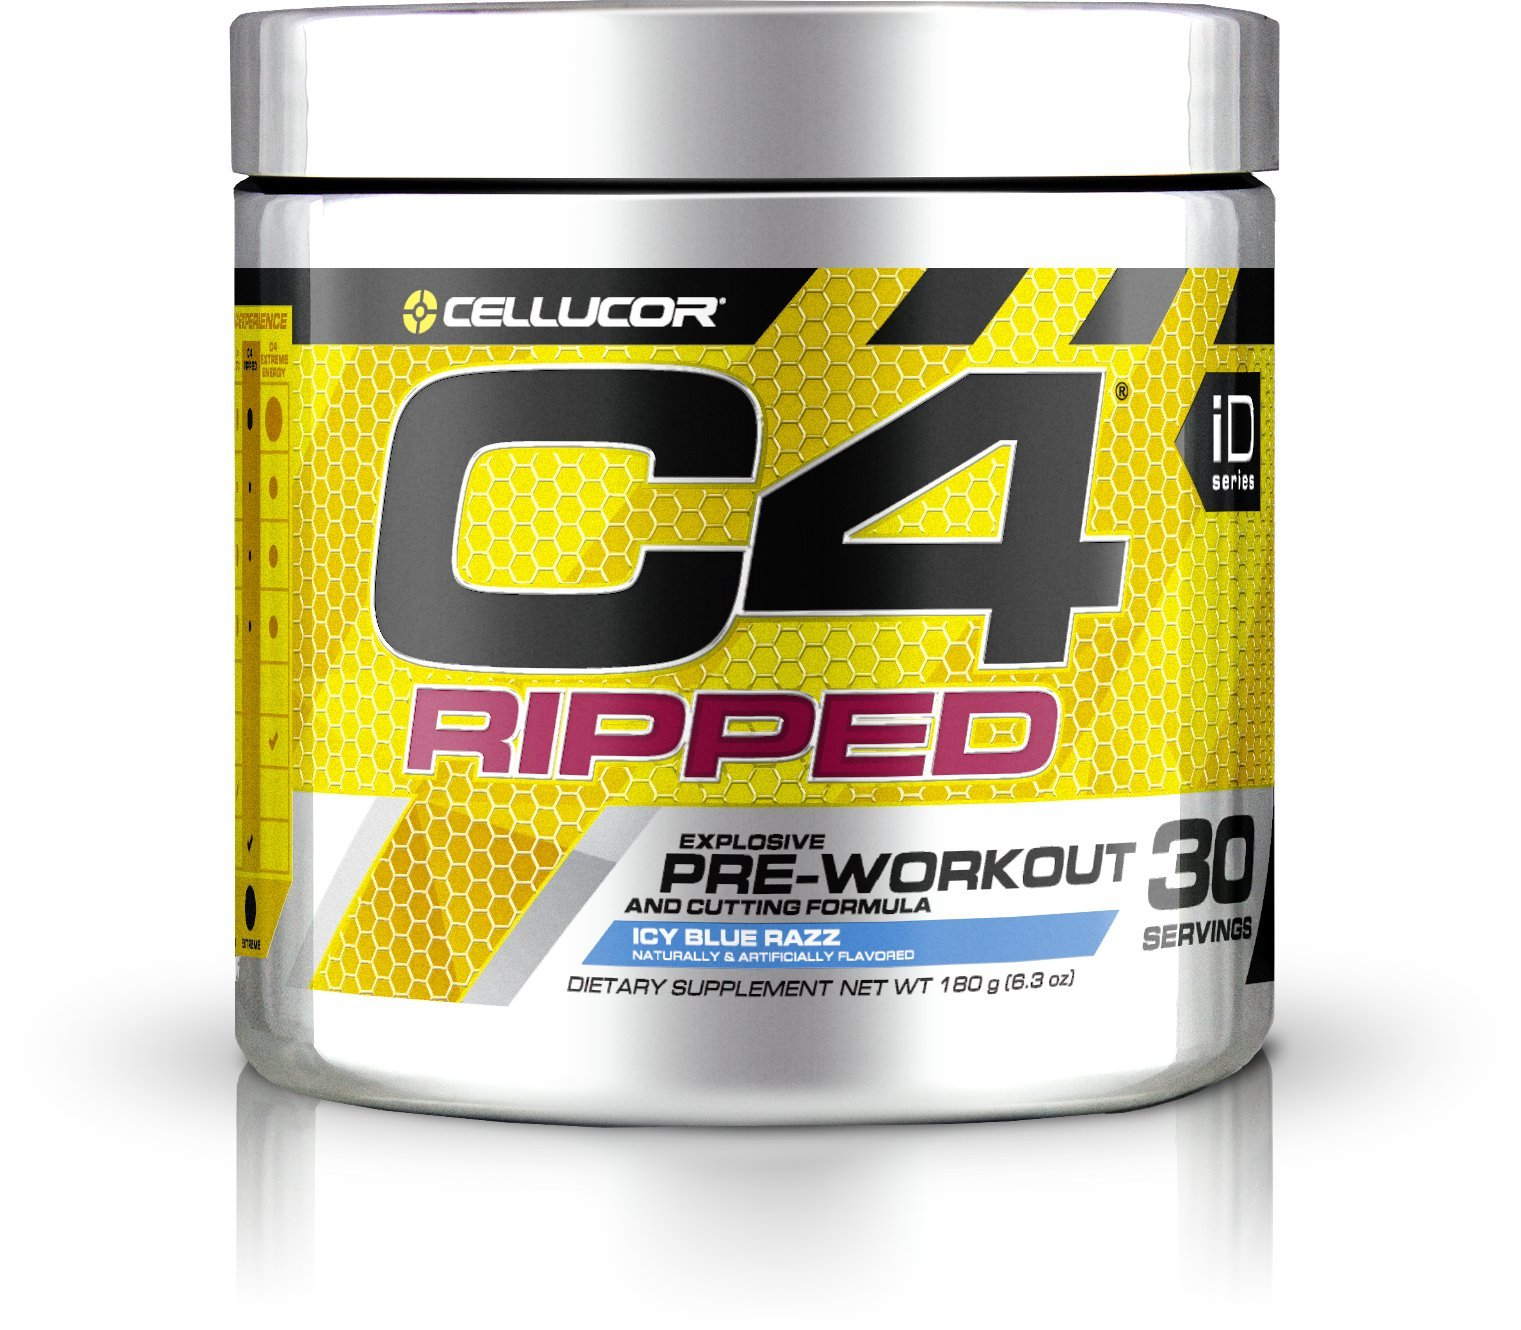 Cellucor C4 Ripped Pre Workout Powder + Thermogenic Fat Burner, Fat Burners for Men & Women, Weight Loss & Energy, Icy Blue Razz, 30 Servings